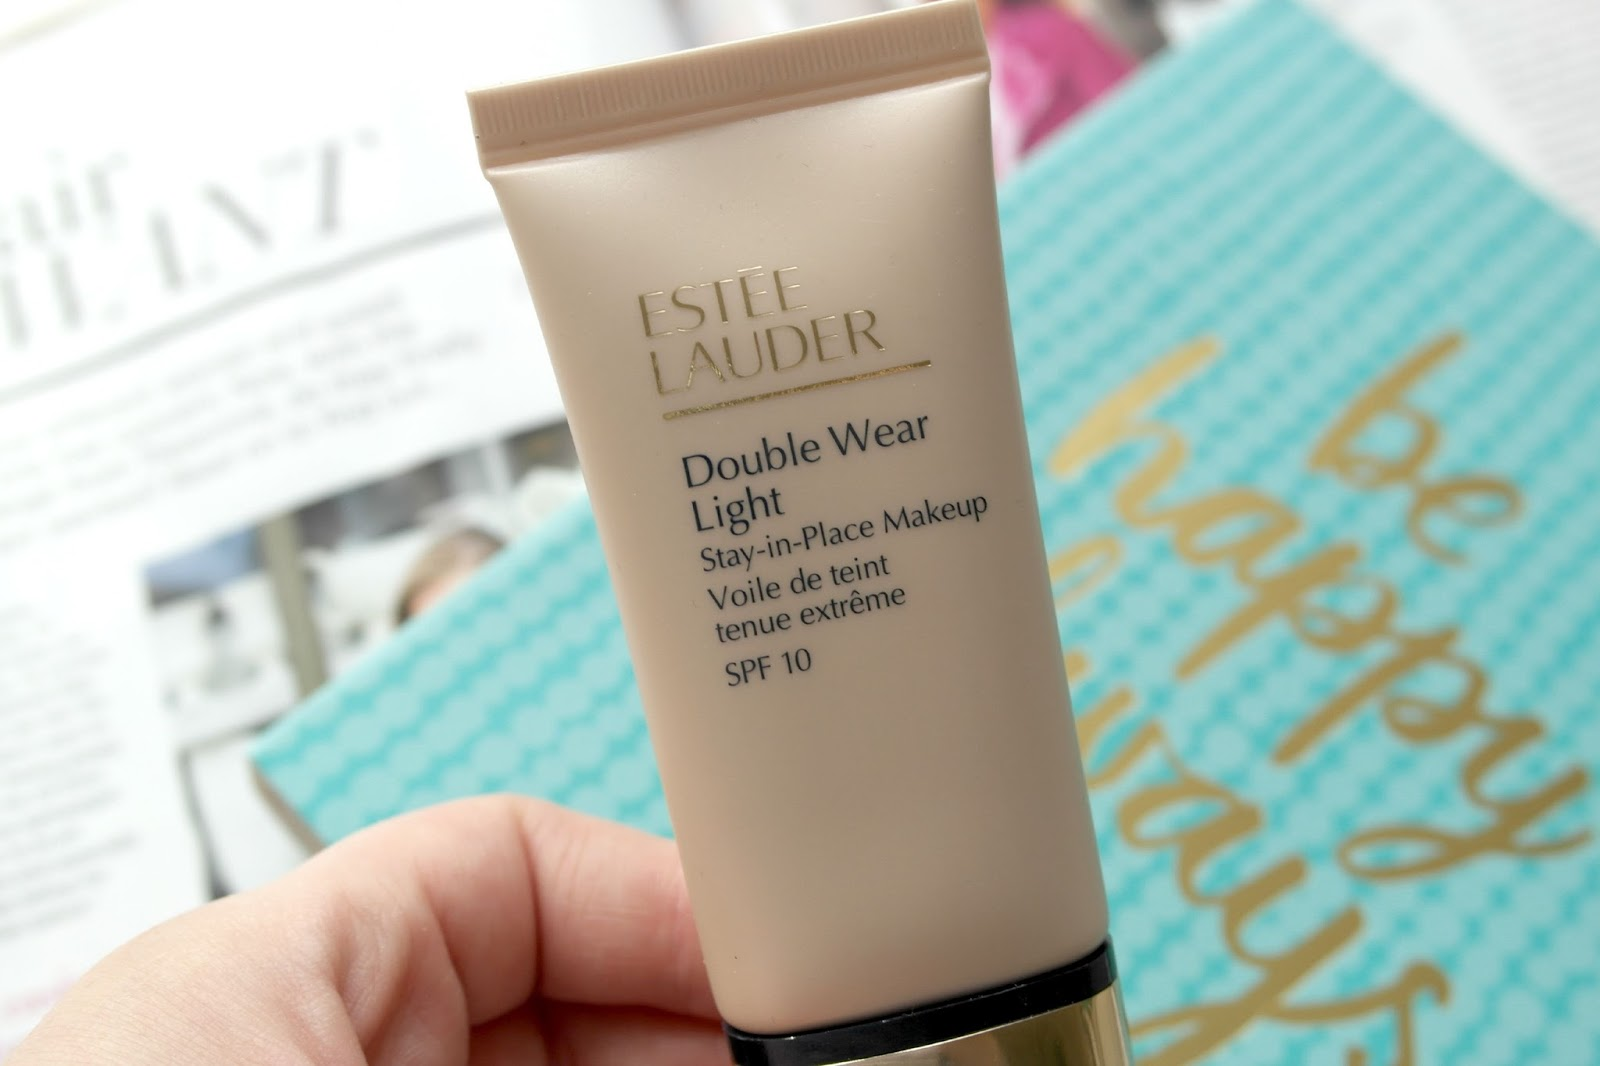 ESTÉE LAUDER DOUBLE WEAR LIGHT FOUNDATION IN 0.5 - amyjanealice